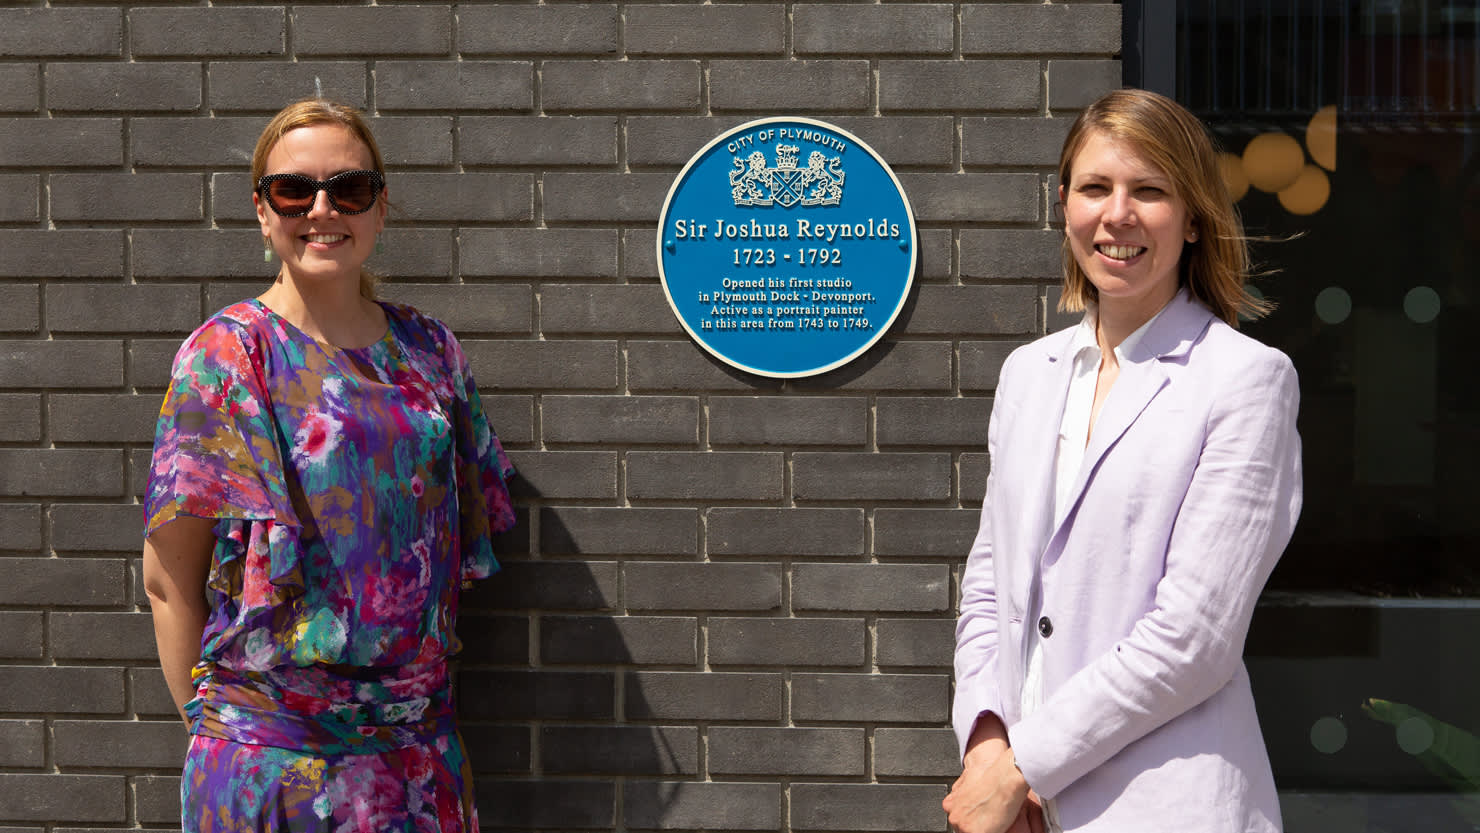 Louisa Blight, Collections Manager and Emma Philip, Senior Curator with the new plaque